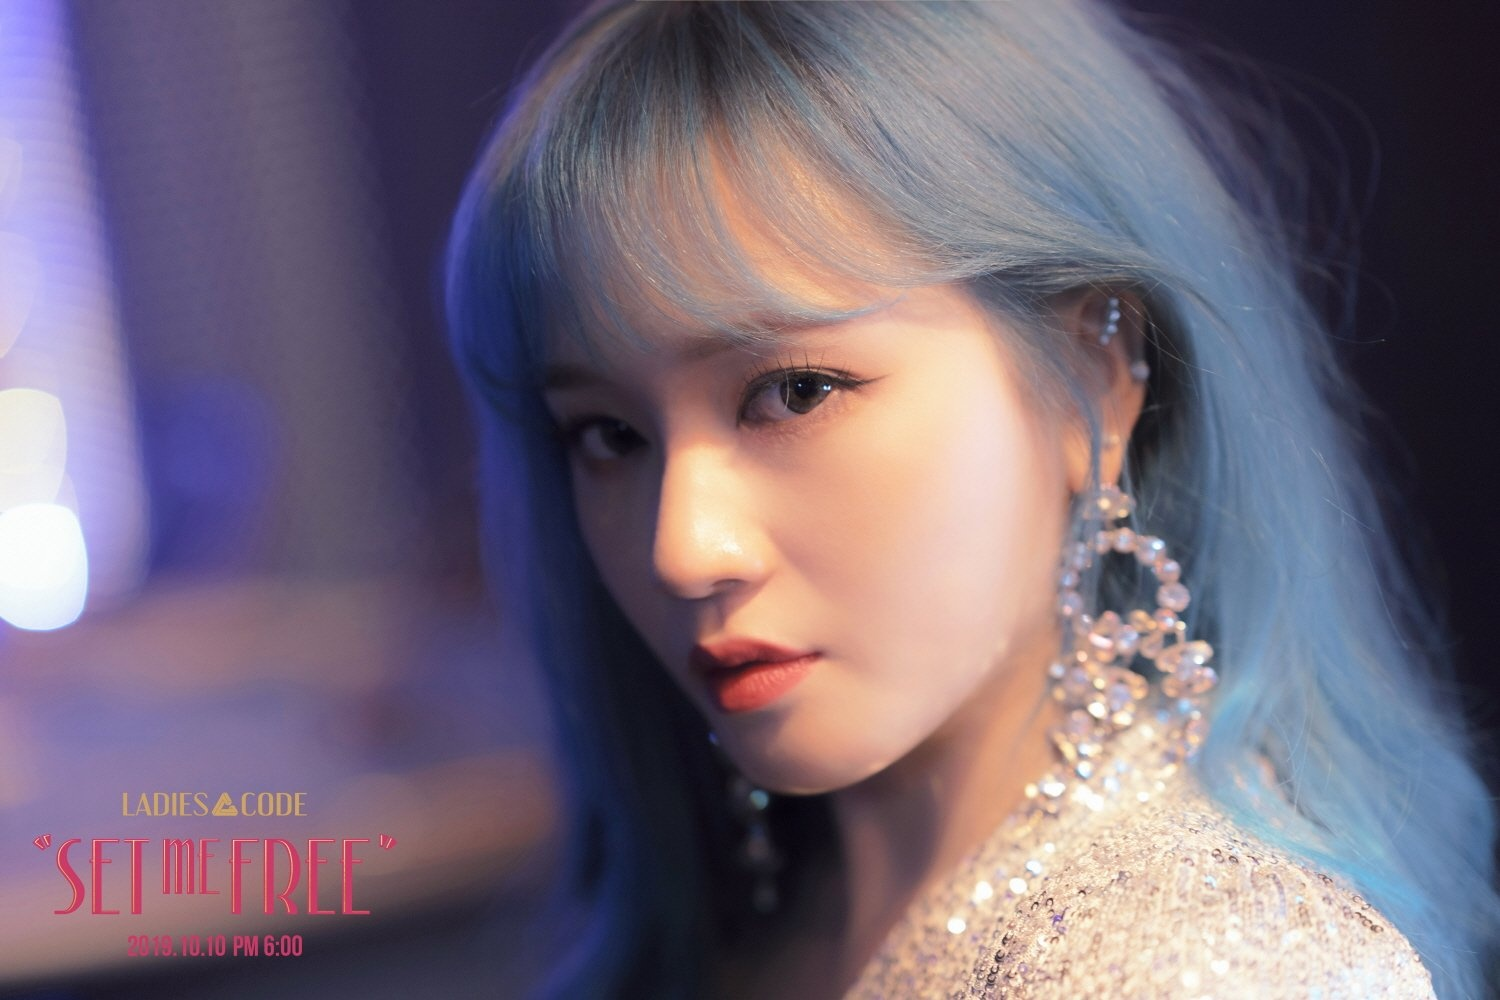 Sojung profile image